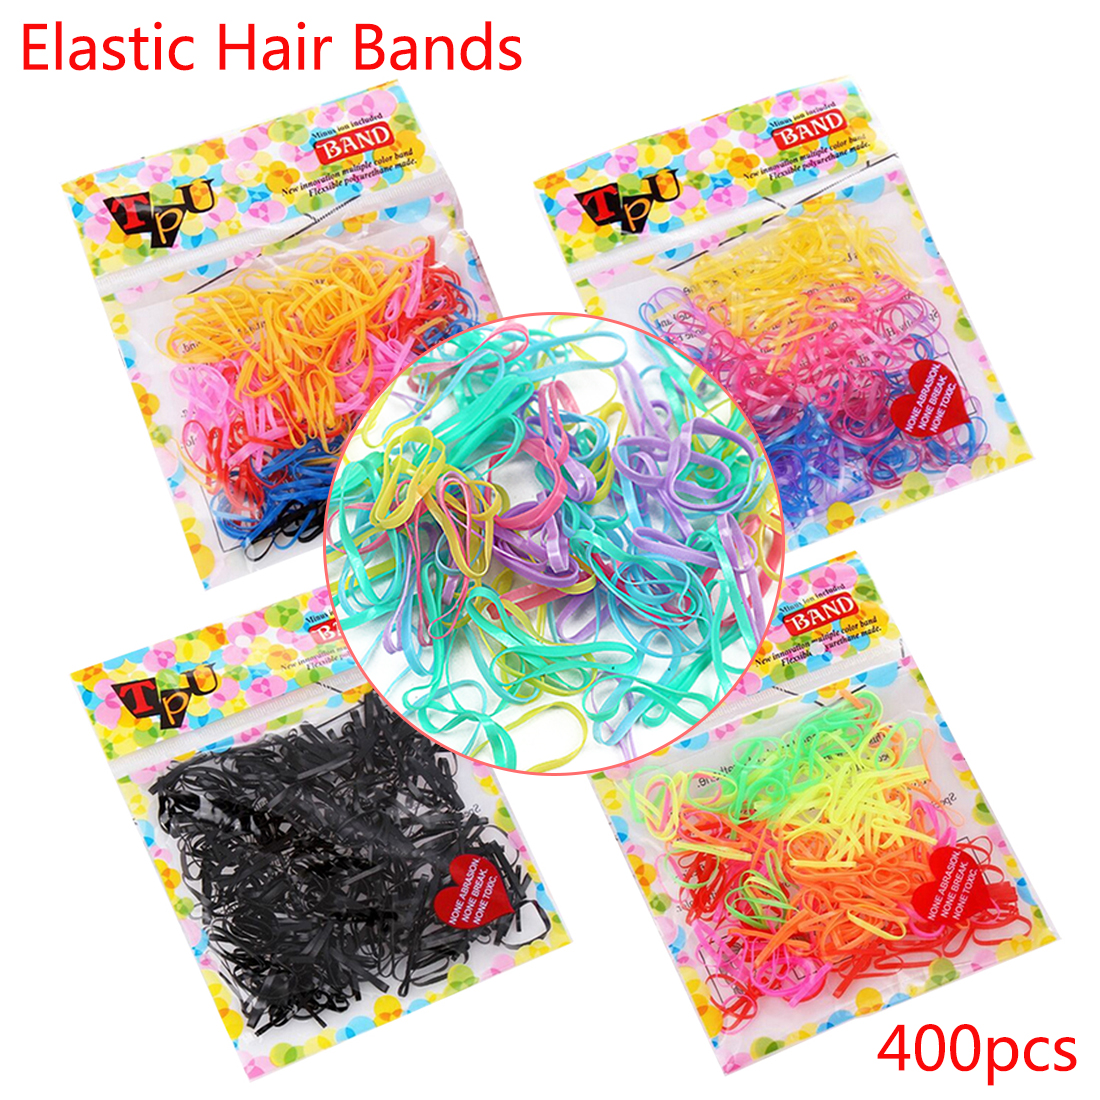 400pcs/lot Korean Style Headwear Elastic Rubber Band One-Off Braiding Hair Rings Tie Gum Scrunchy for Girls Hair Accessories m mism 2pcs new rhinestone bead hair elastic band hair accessories rubber tie gum ponytail holder scrunchy for women girls